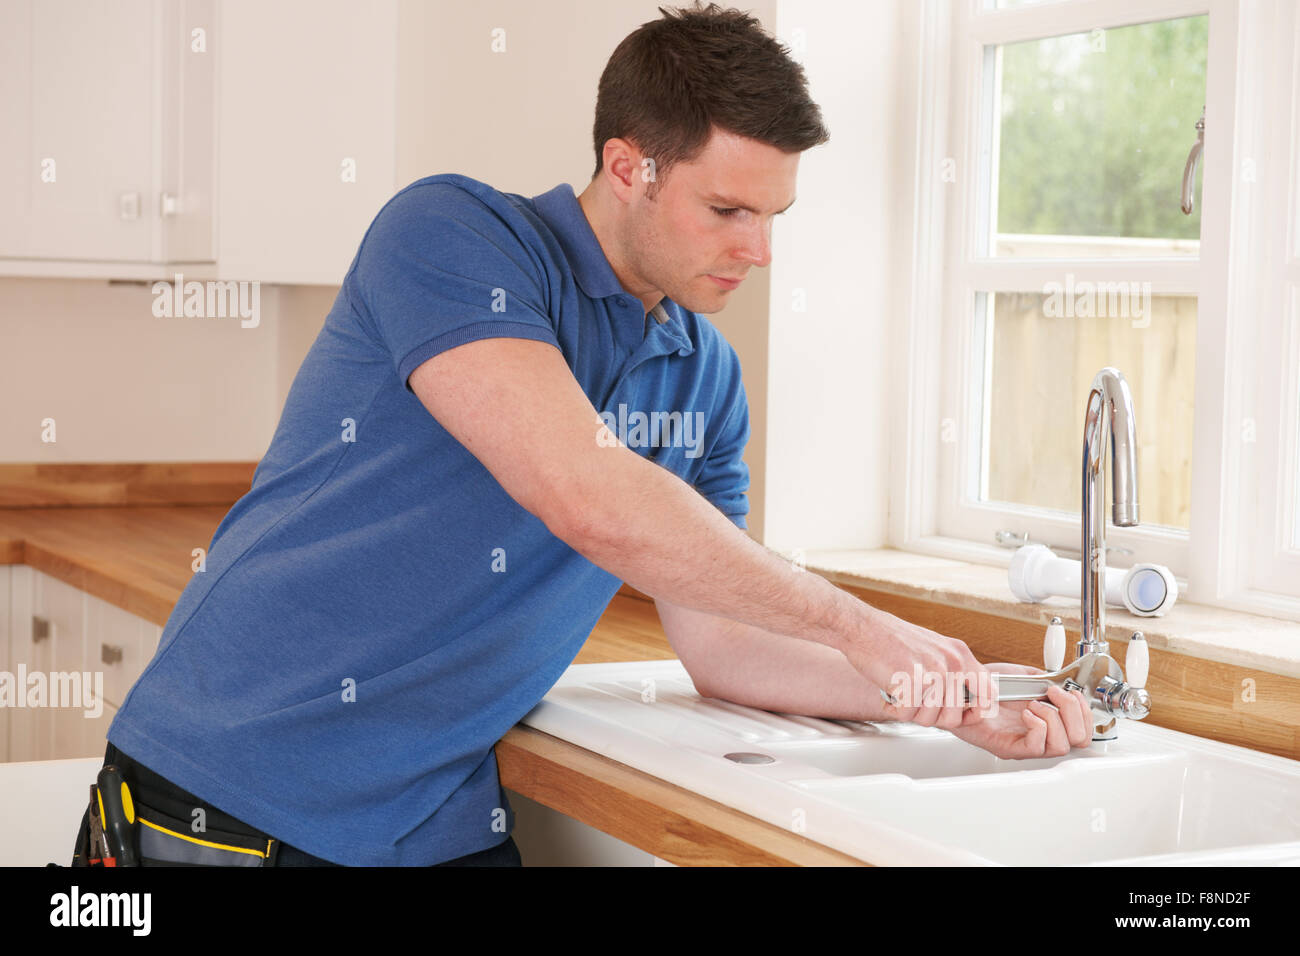 Plumber Mending Tap With Adjustable Wrench Stock Photo